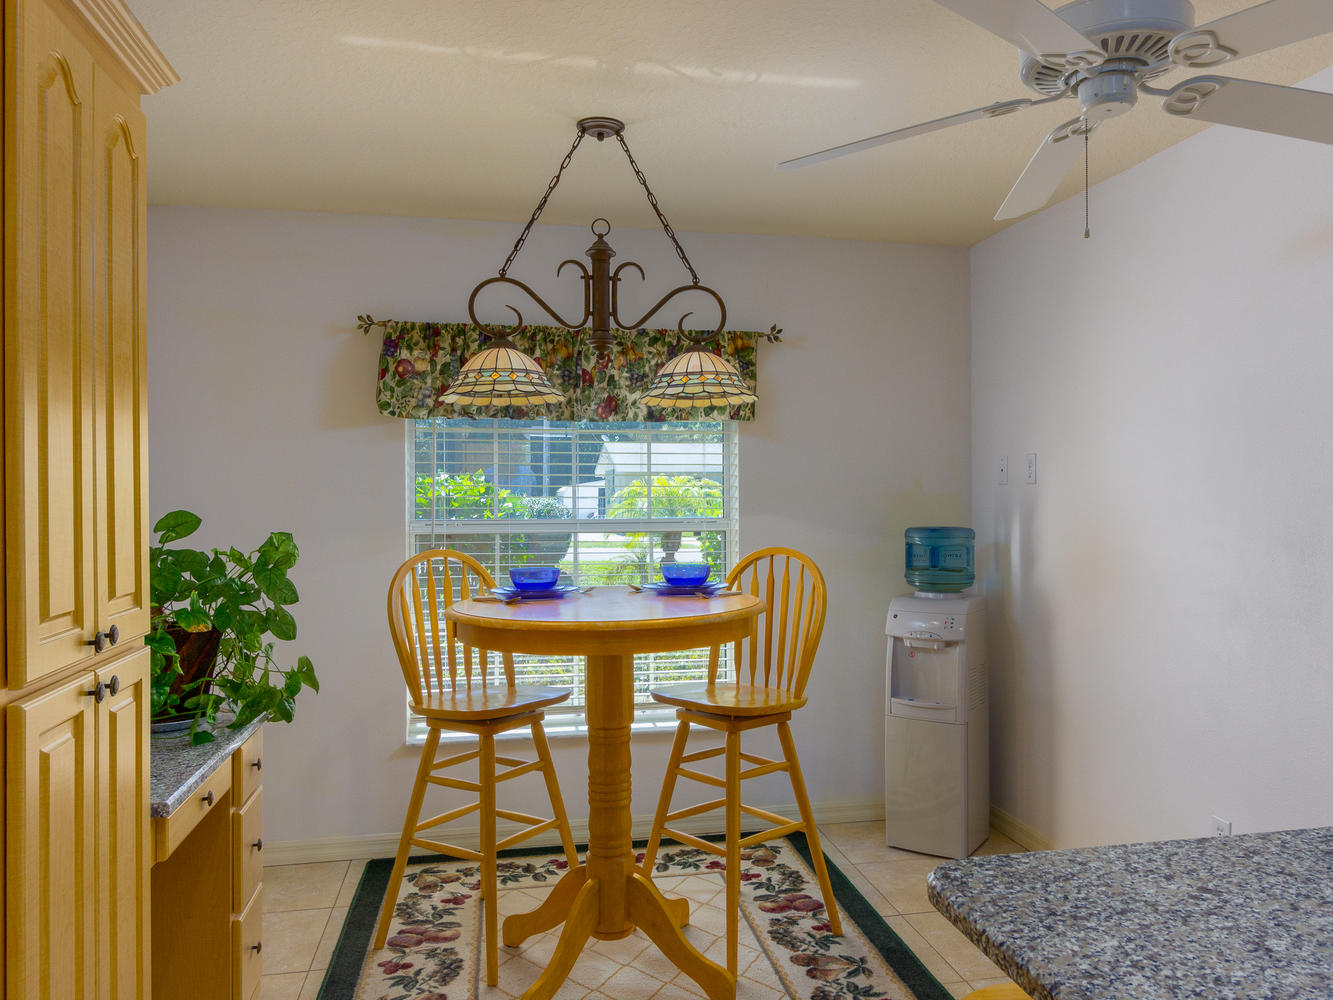 15660_SE_89th_Ct_Summerfield-large-008-28-Breakfast_Area-1334x1000-72dpi